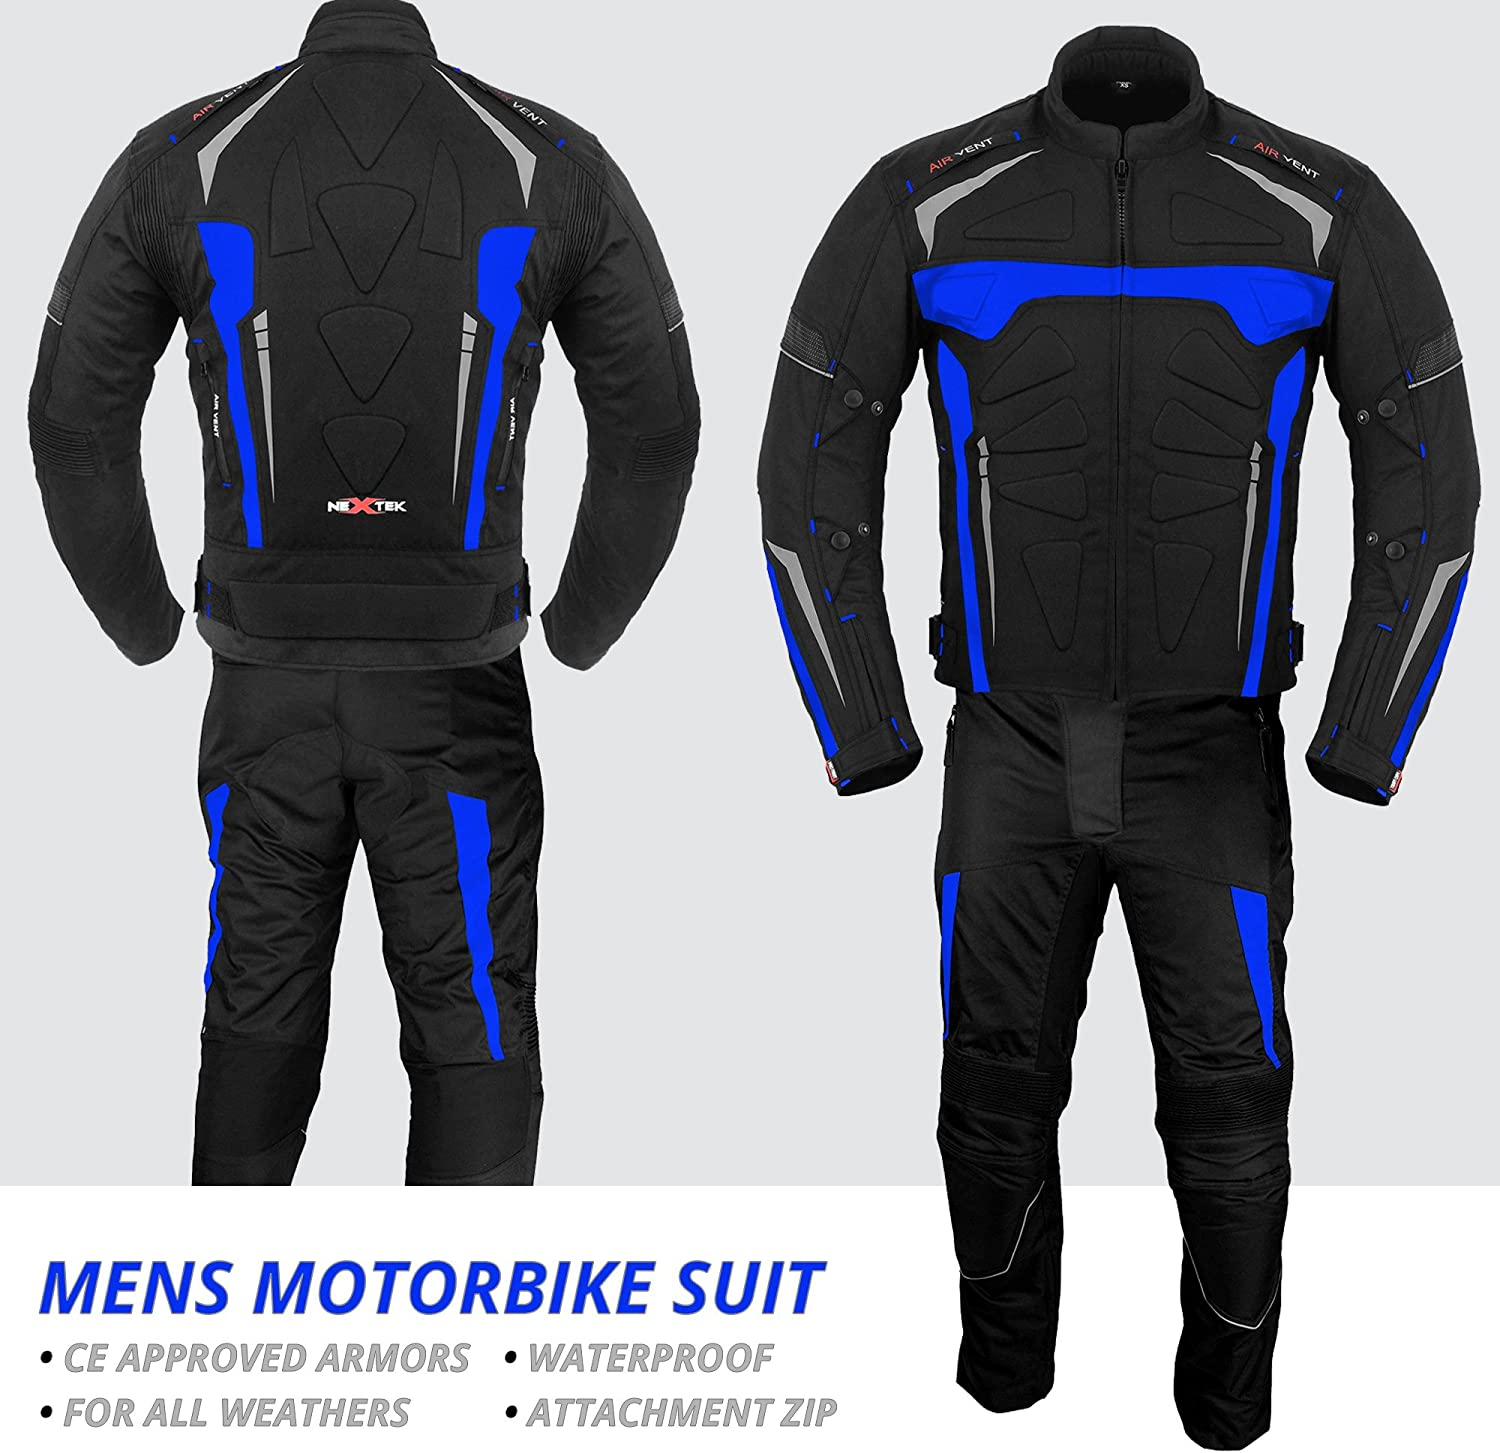 Motorbike Armor Bike Rider 2-piece Waterproof Racing Sports Suit All Weather Wearing CE Armour For Mens Boys Motorcycle Suits S Black